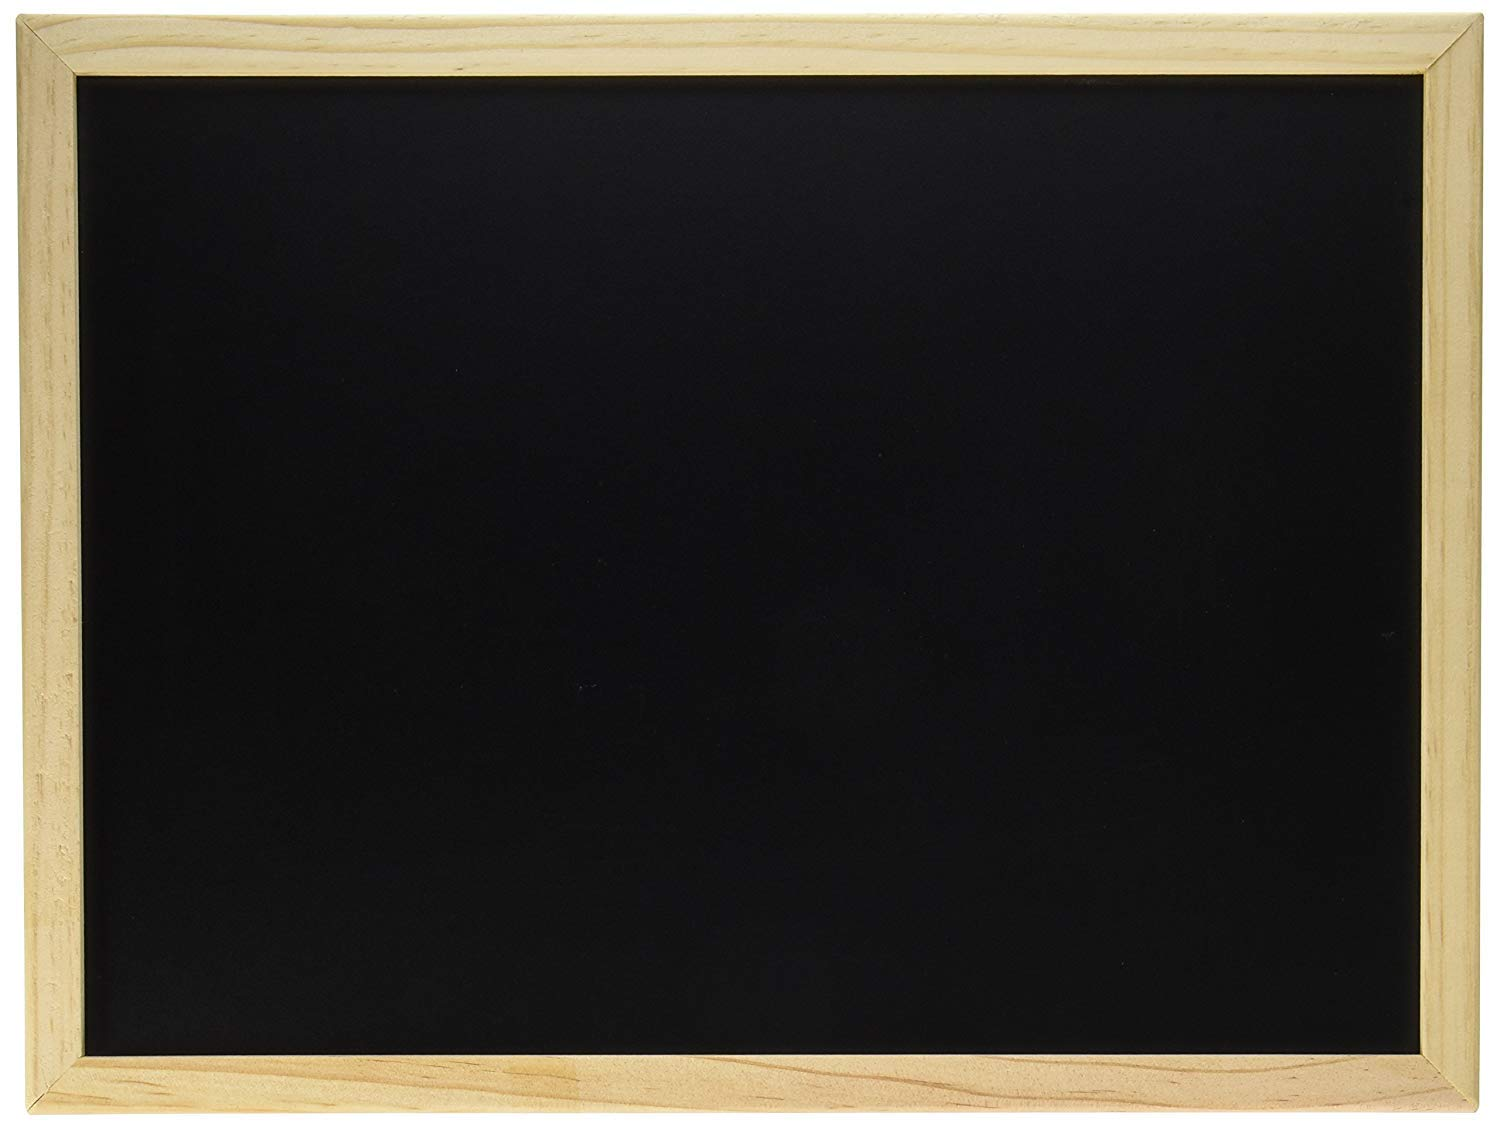 """Darice Erasable Blackboard with Wood Frame–Use with Chalk or Chalk Markers–Unfinished Wood Frame Ready to Decorate–Perfect for First Day of School, Baby Milestones, Events, Chalk Art and More, 12""""x16"""""""